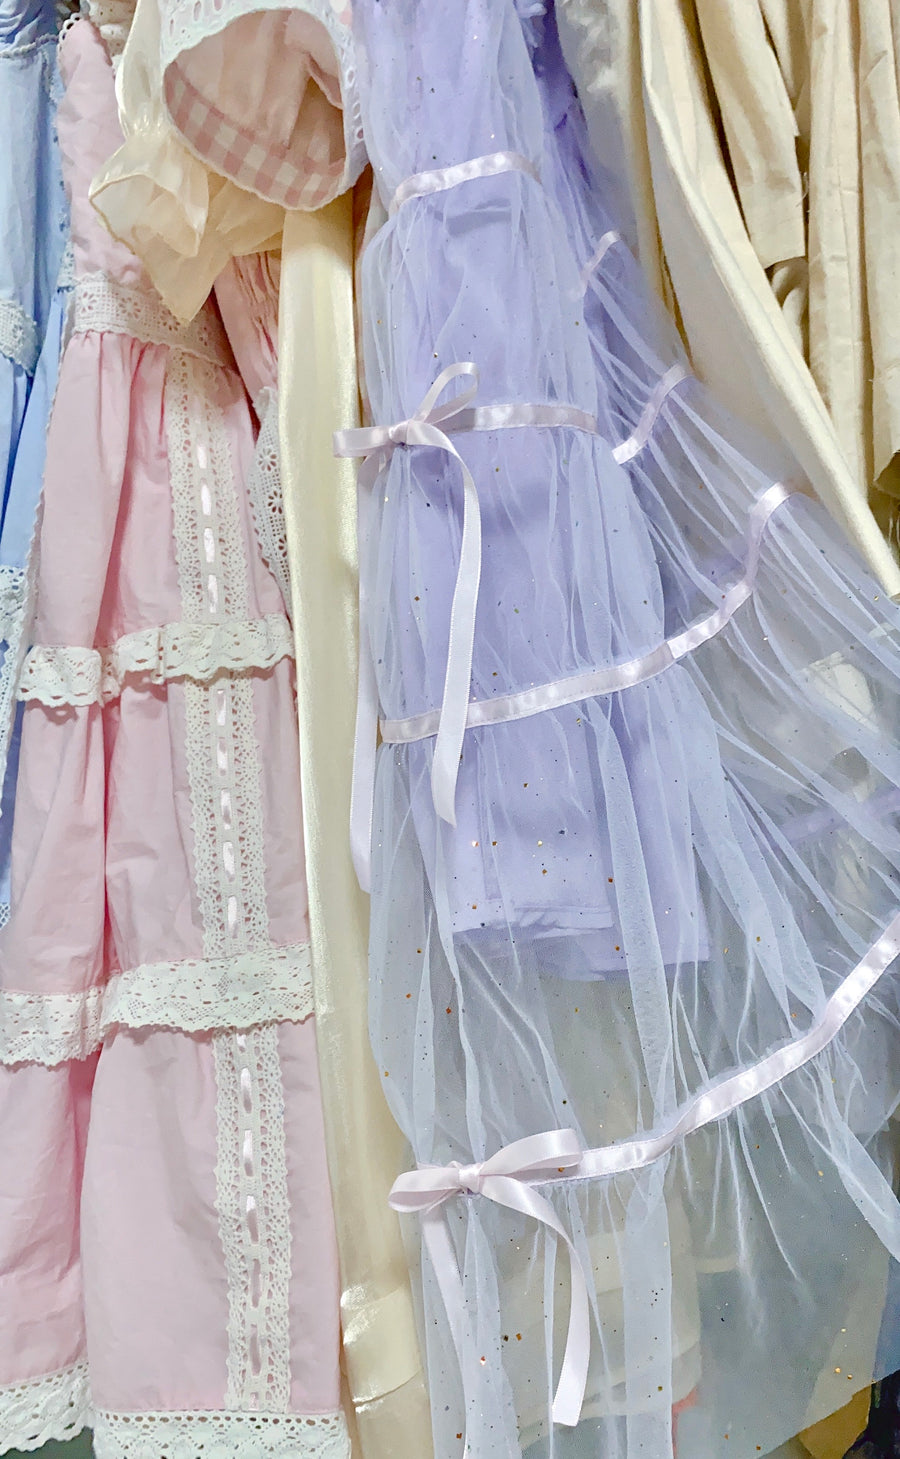 [12 Studio] Lavender Kiss Romantic Yarn Dress - Peiliee Shop